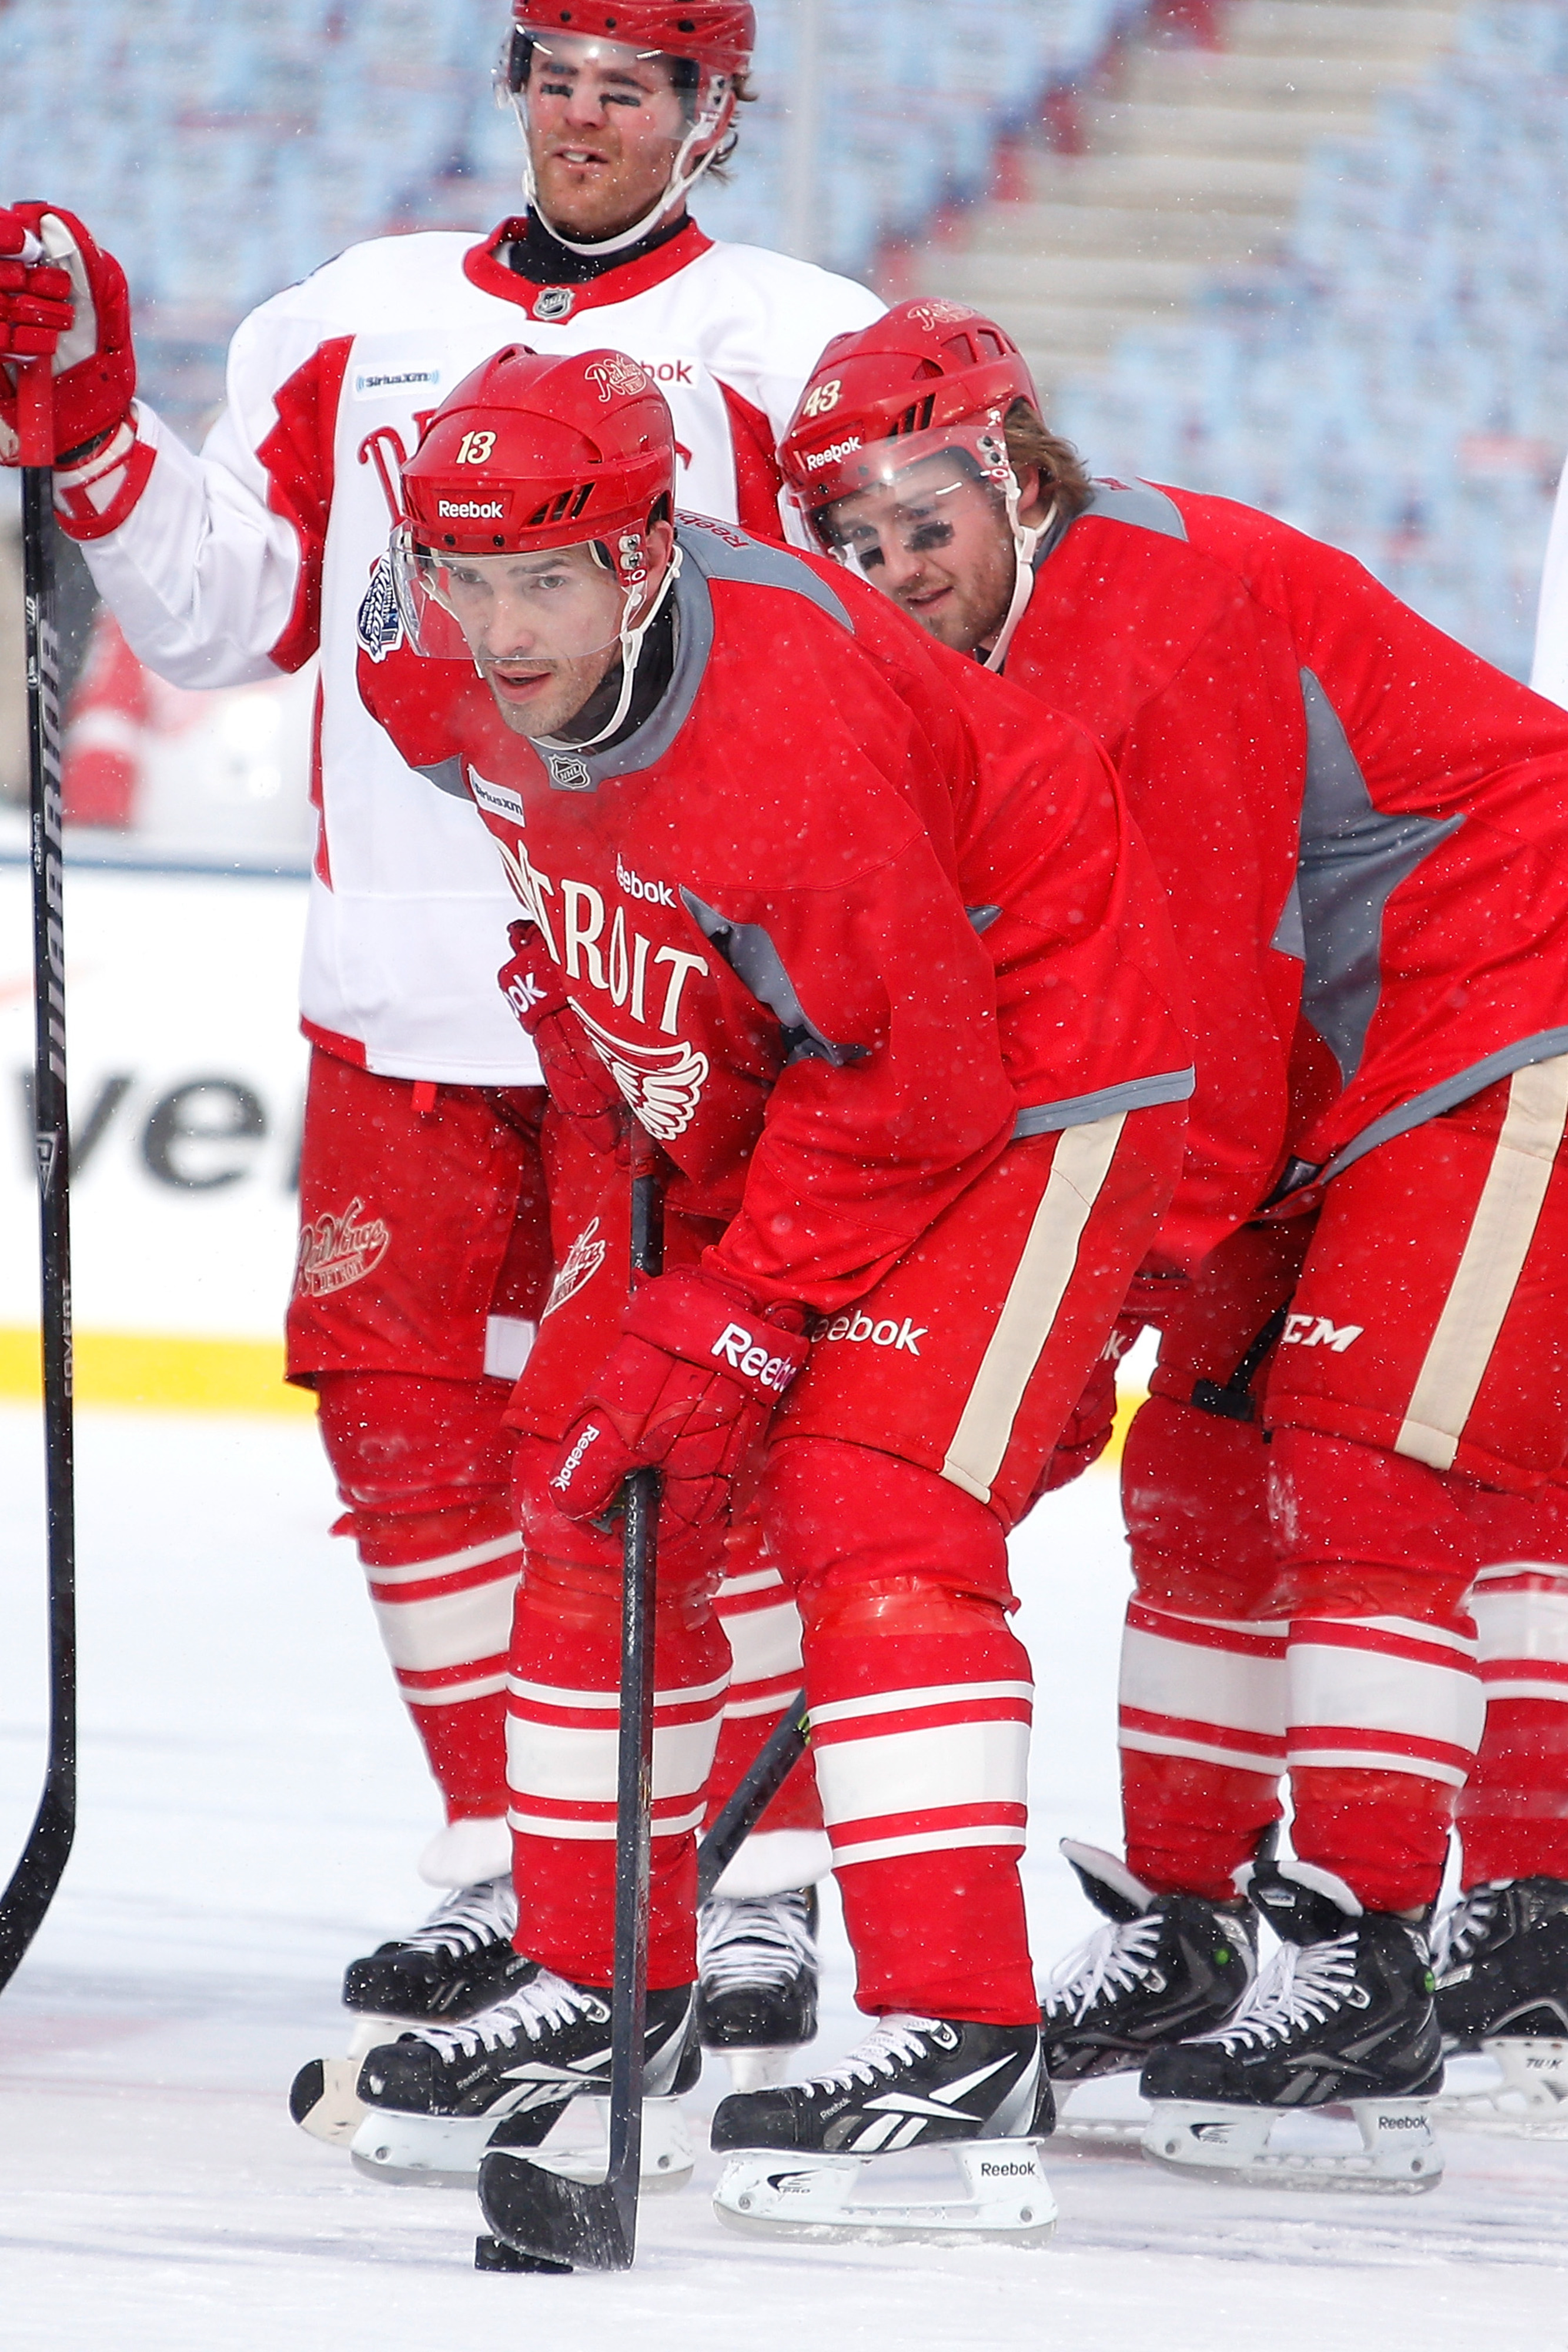 Pavel Datsyuk participates in the Red Wings' practice on New Year's Eve.